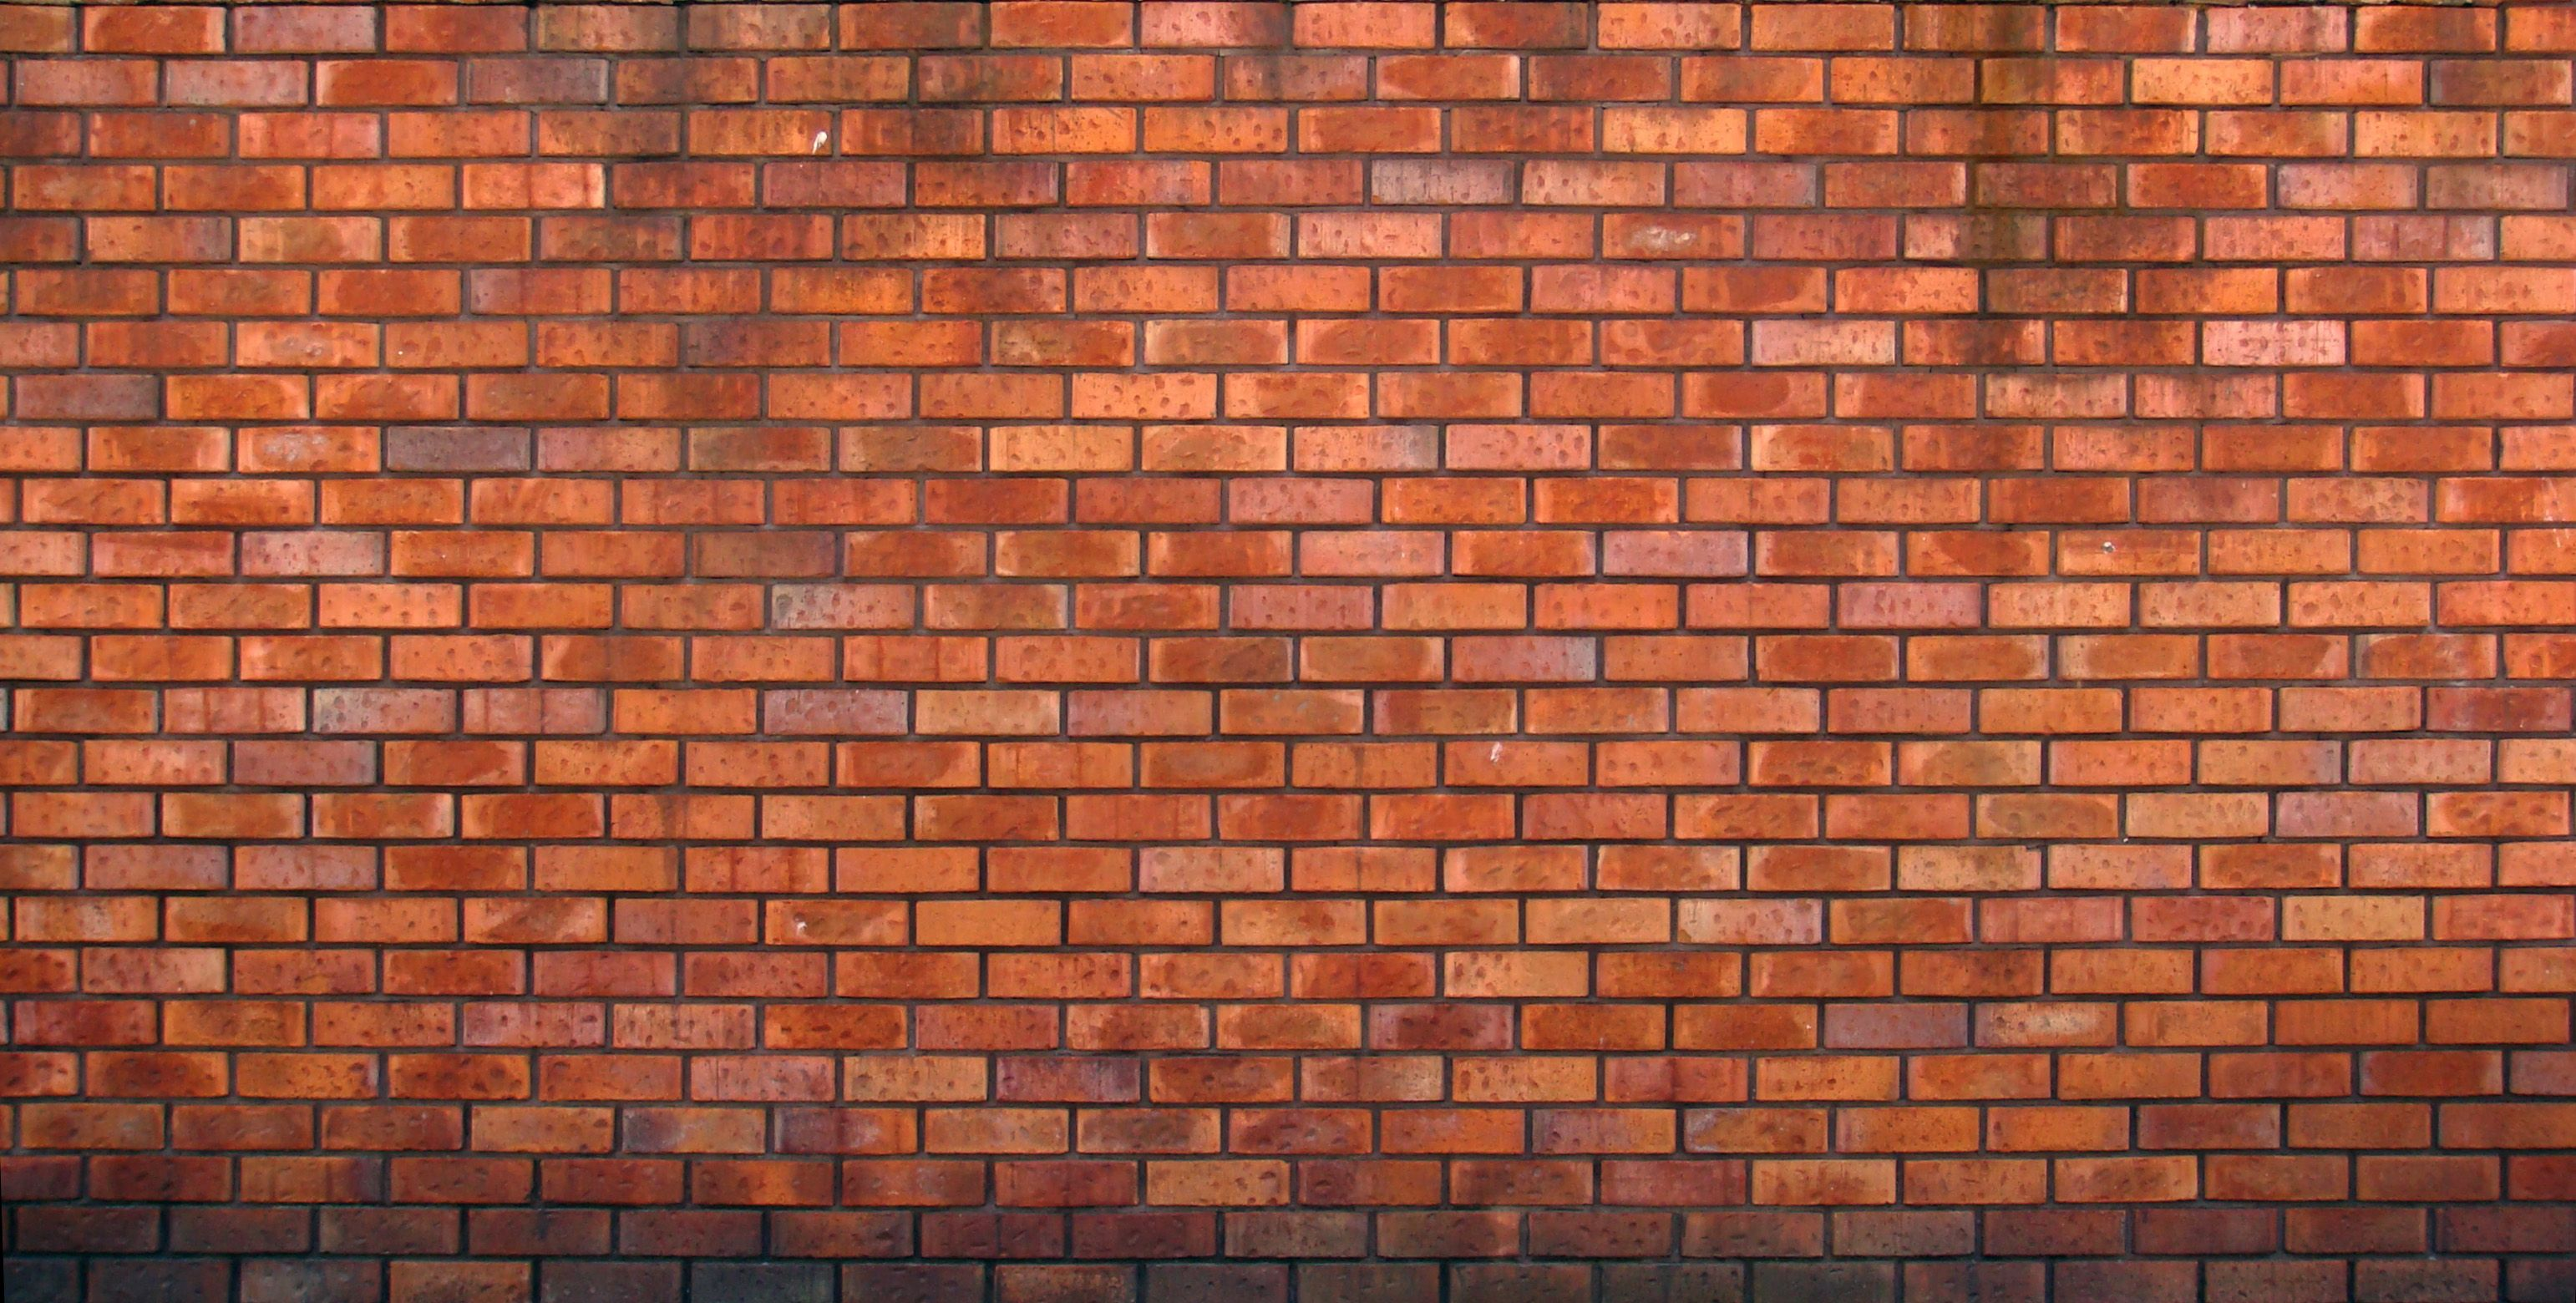 10b8724803a0253163fe0d09a4098ad2 brick wall background for Wallpaper of home wall